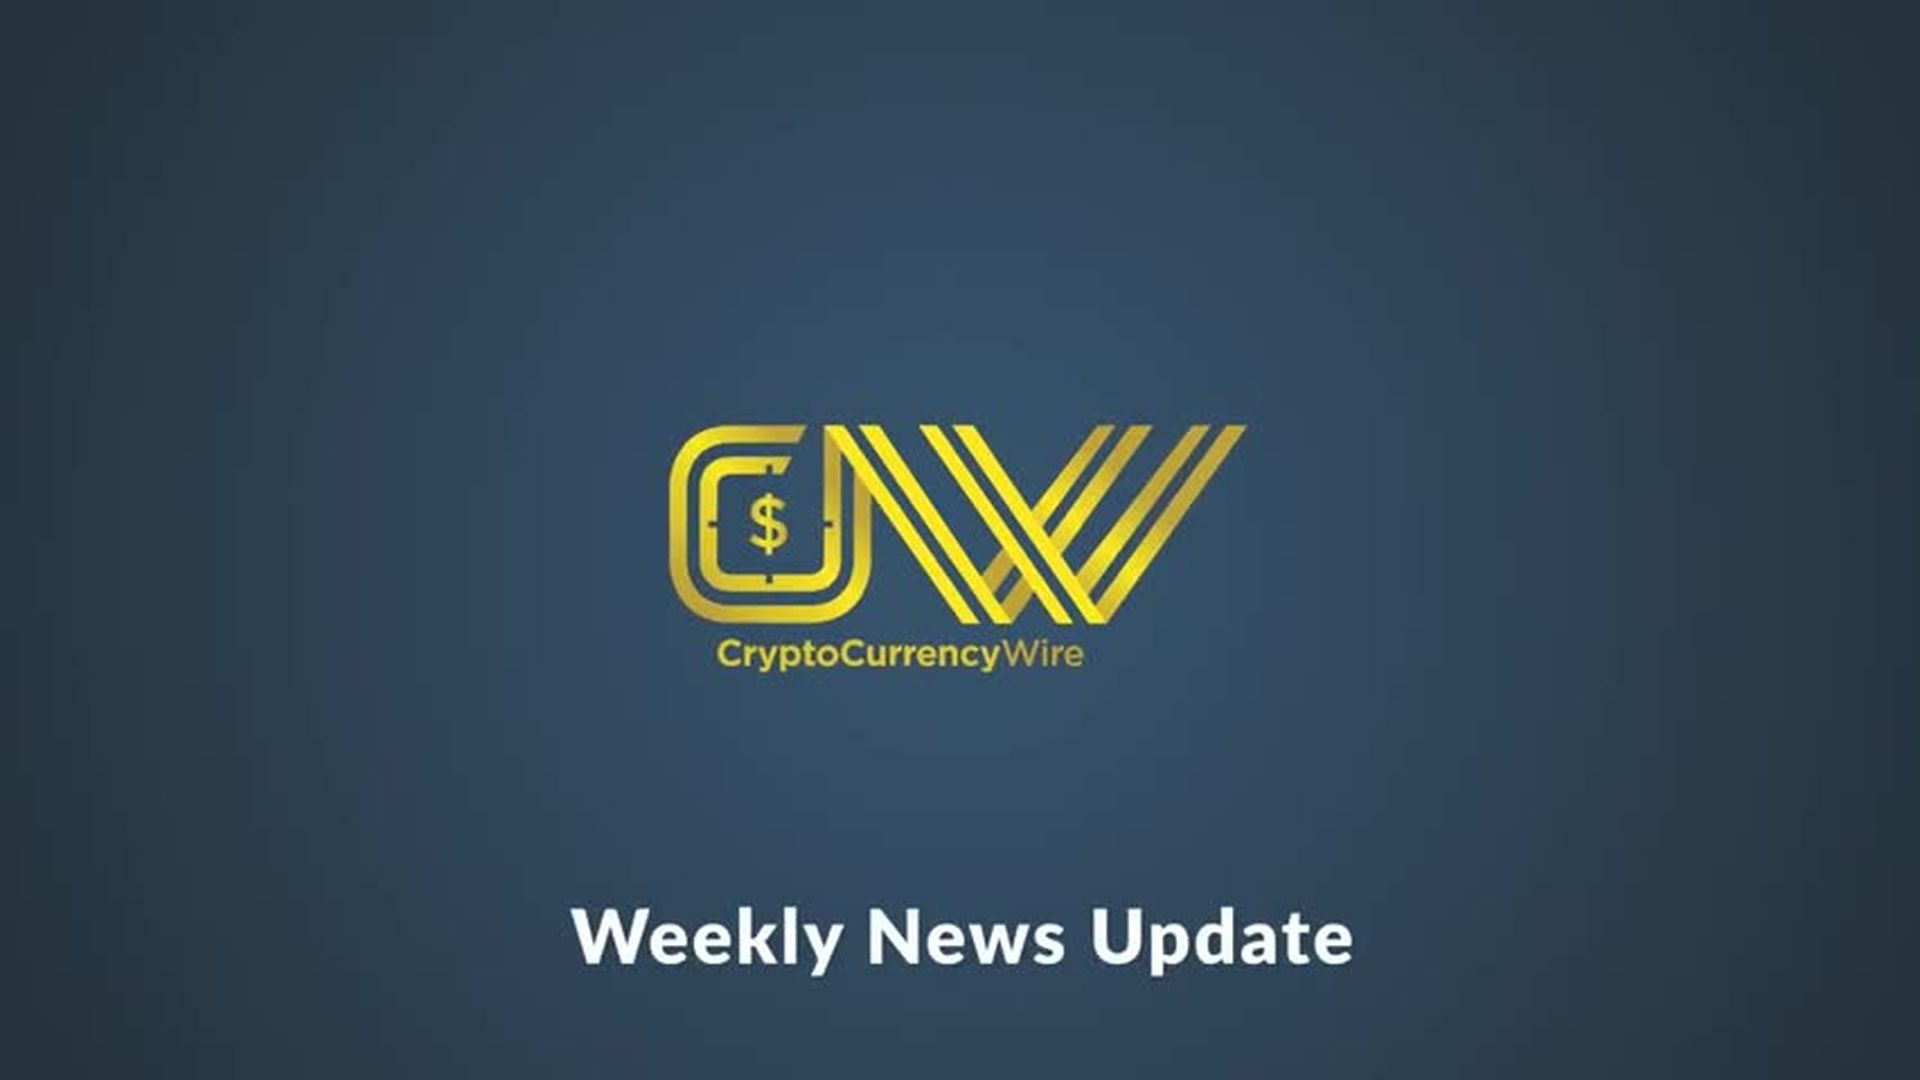 Cryptos Continuing to Run | CryptoCurrencyWire on The Wild West Crypto Show | Episode 96